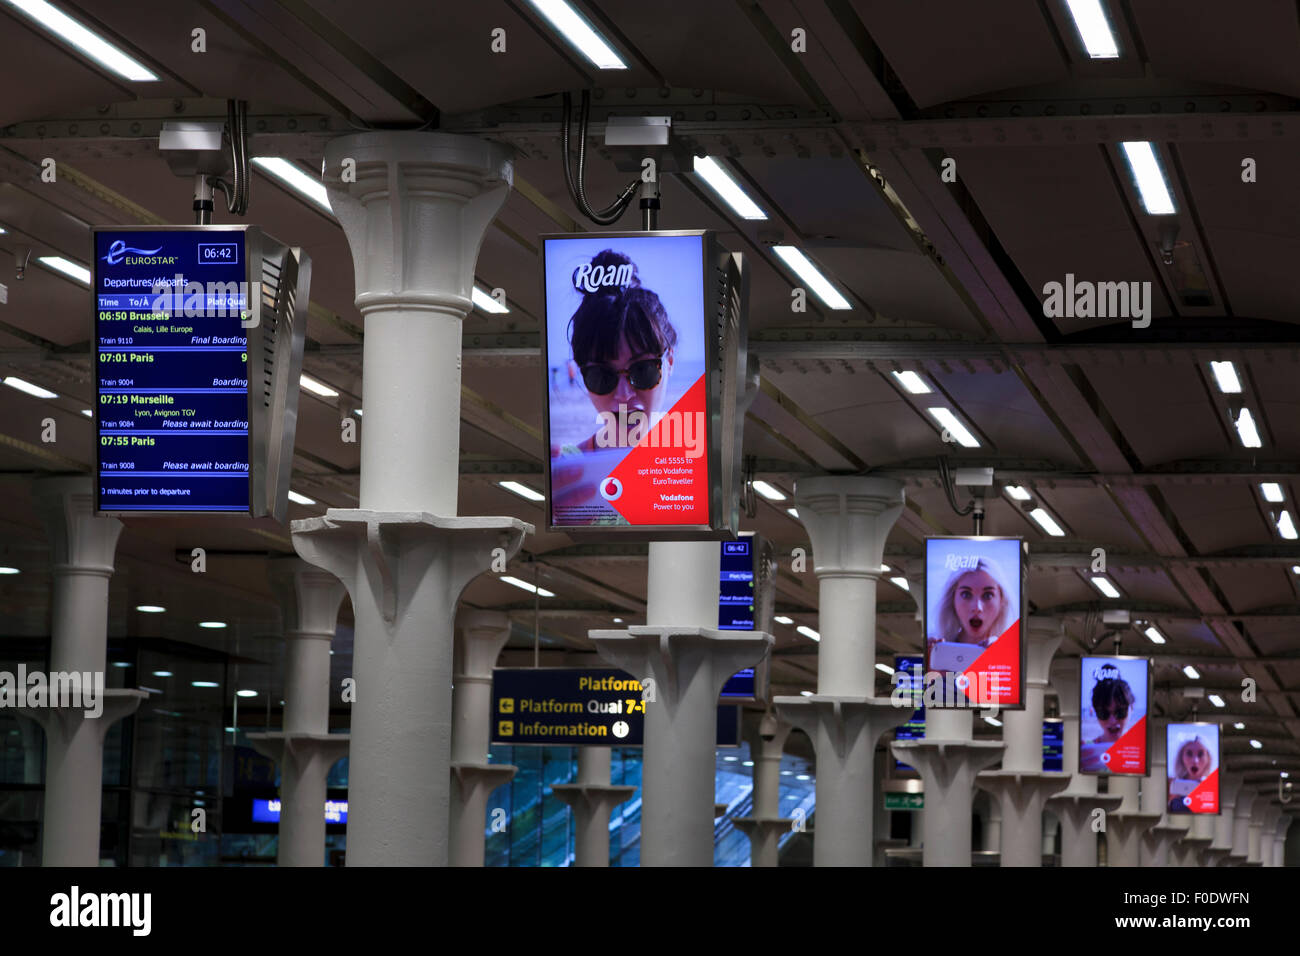 Advertising display screens at the Eurostar Terminal at St Pancras - Stock Image